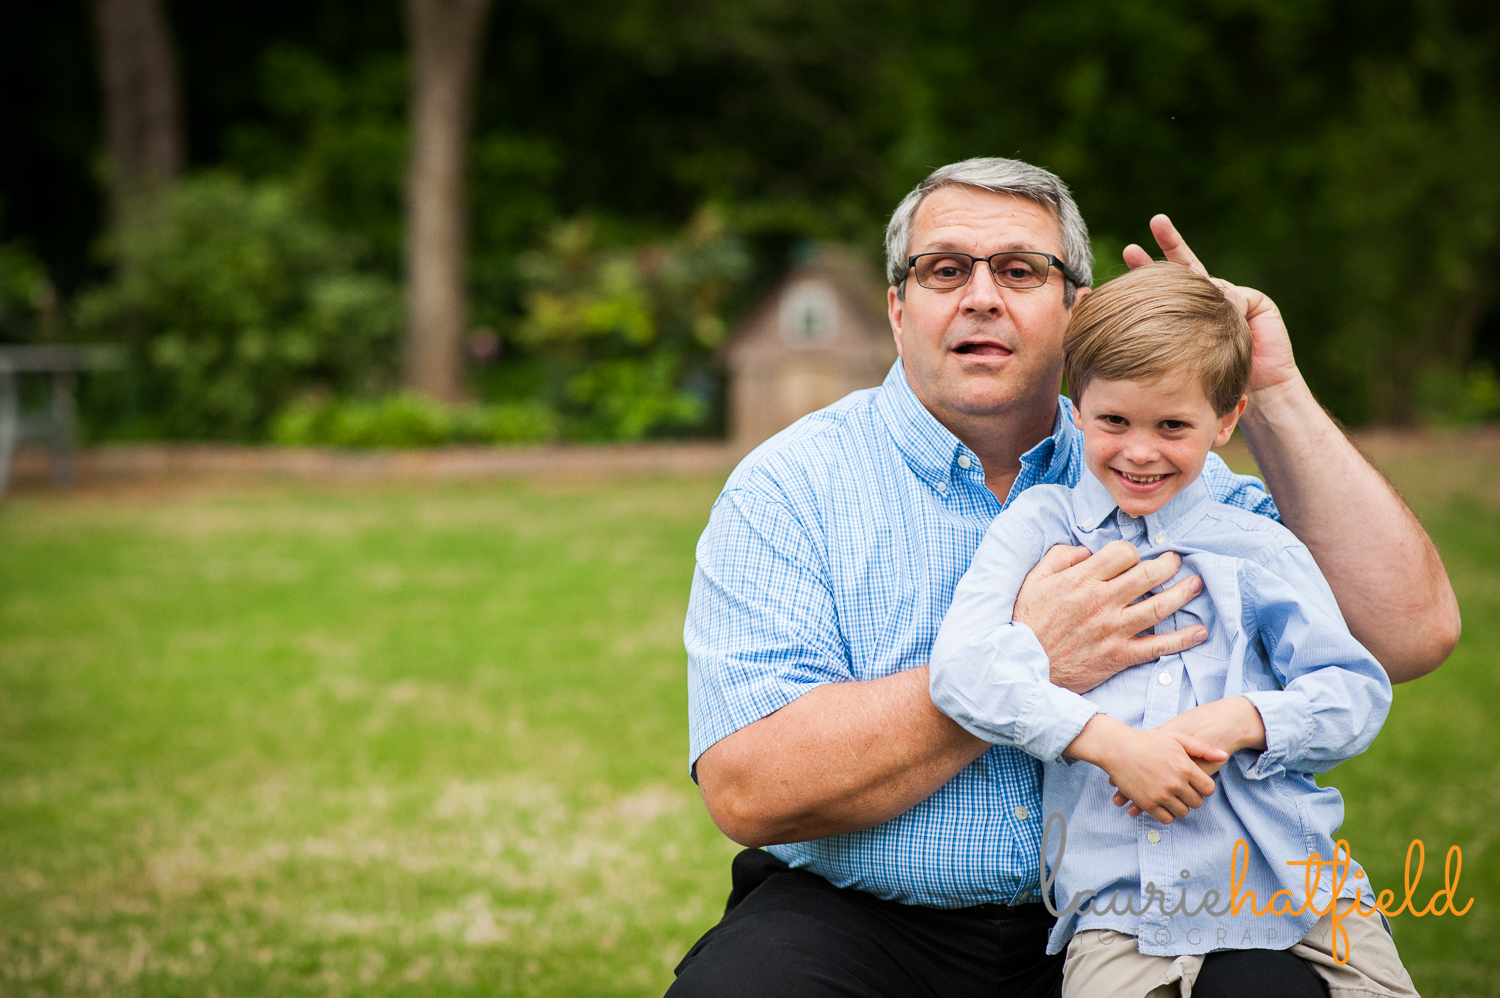 grandfather giving bunny ears to grandson | Huntsville photographer